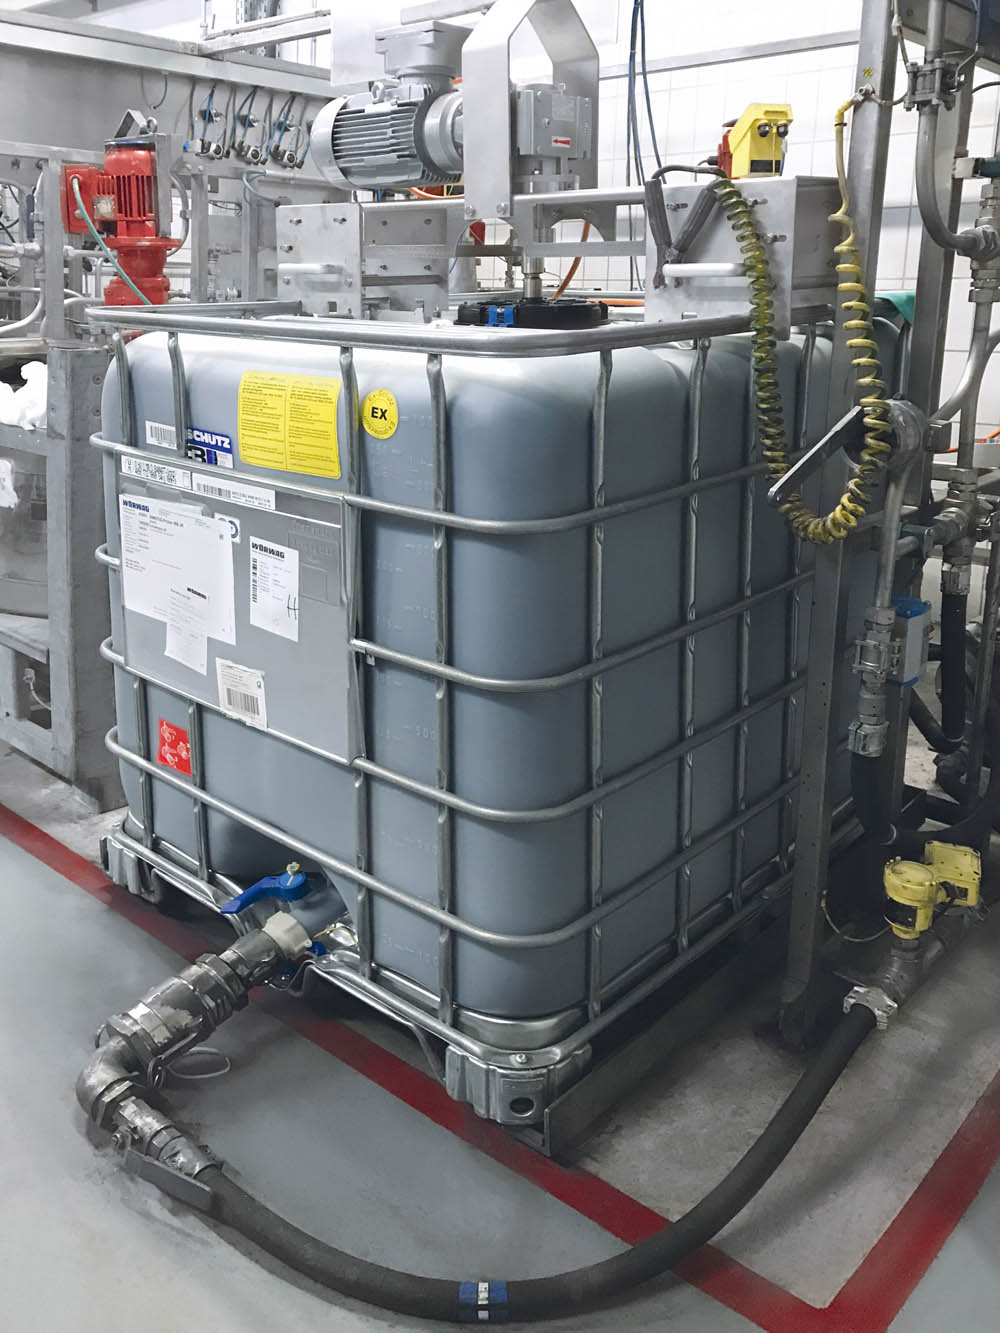 The Schütz IBC with impeller and agitator drive is directly connected to a production line